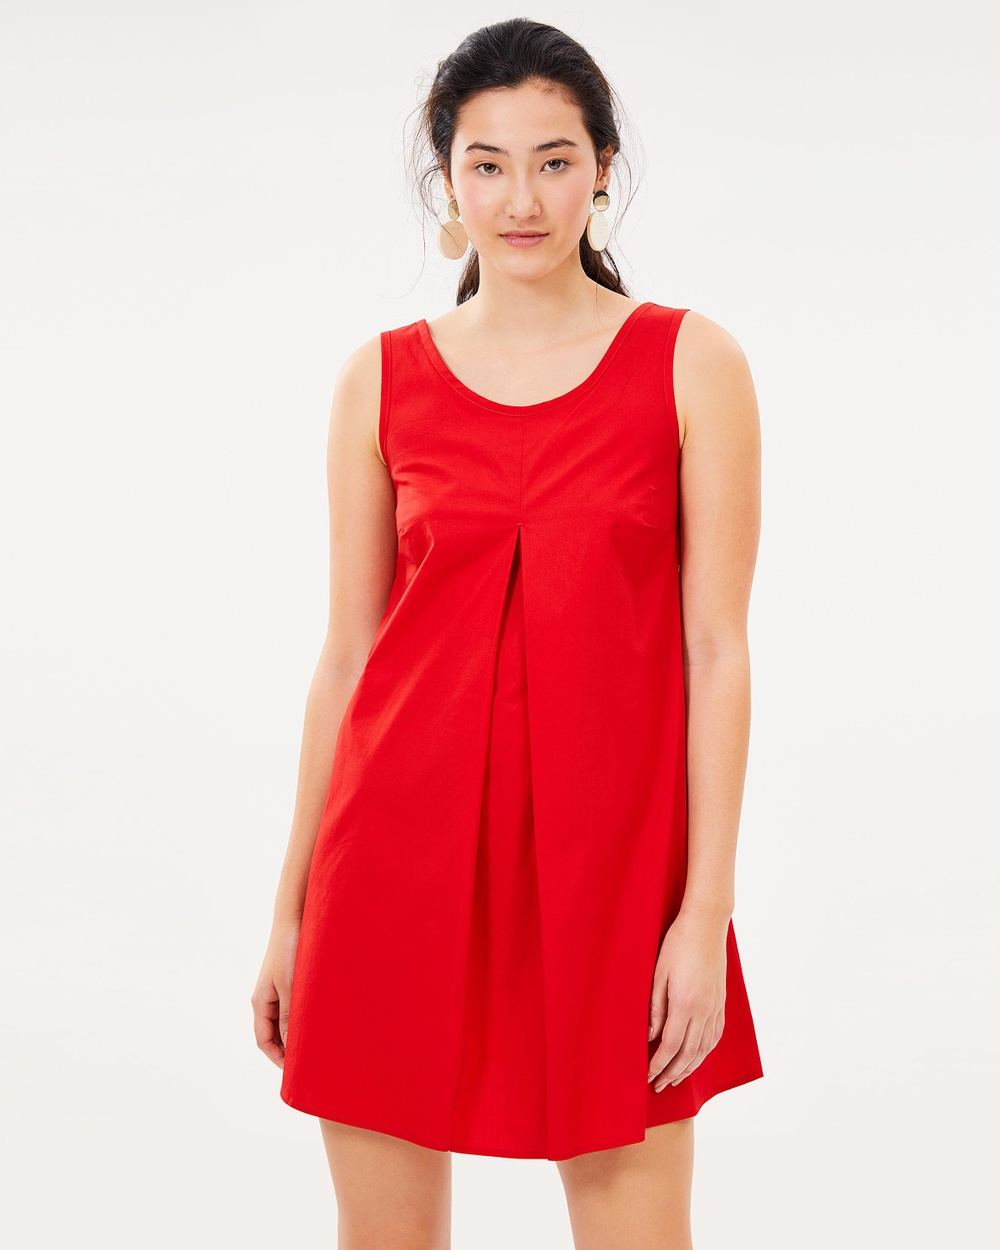 MAX & Co. India Dress Dresses Red India Dress